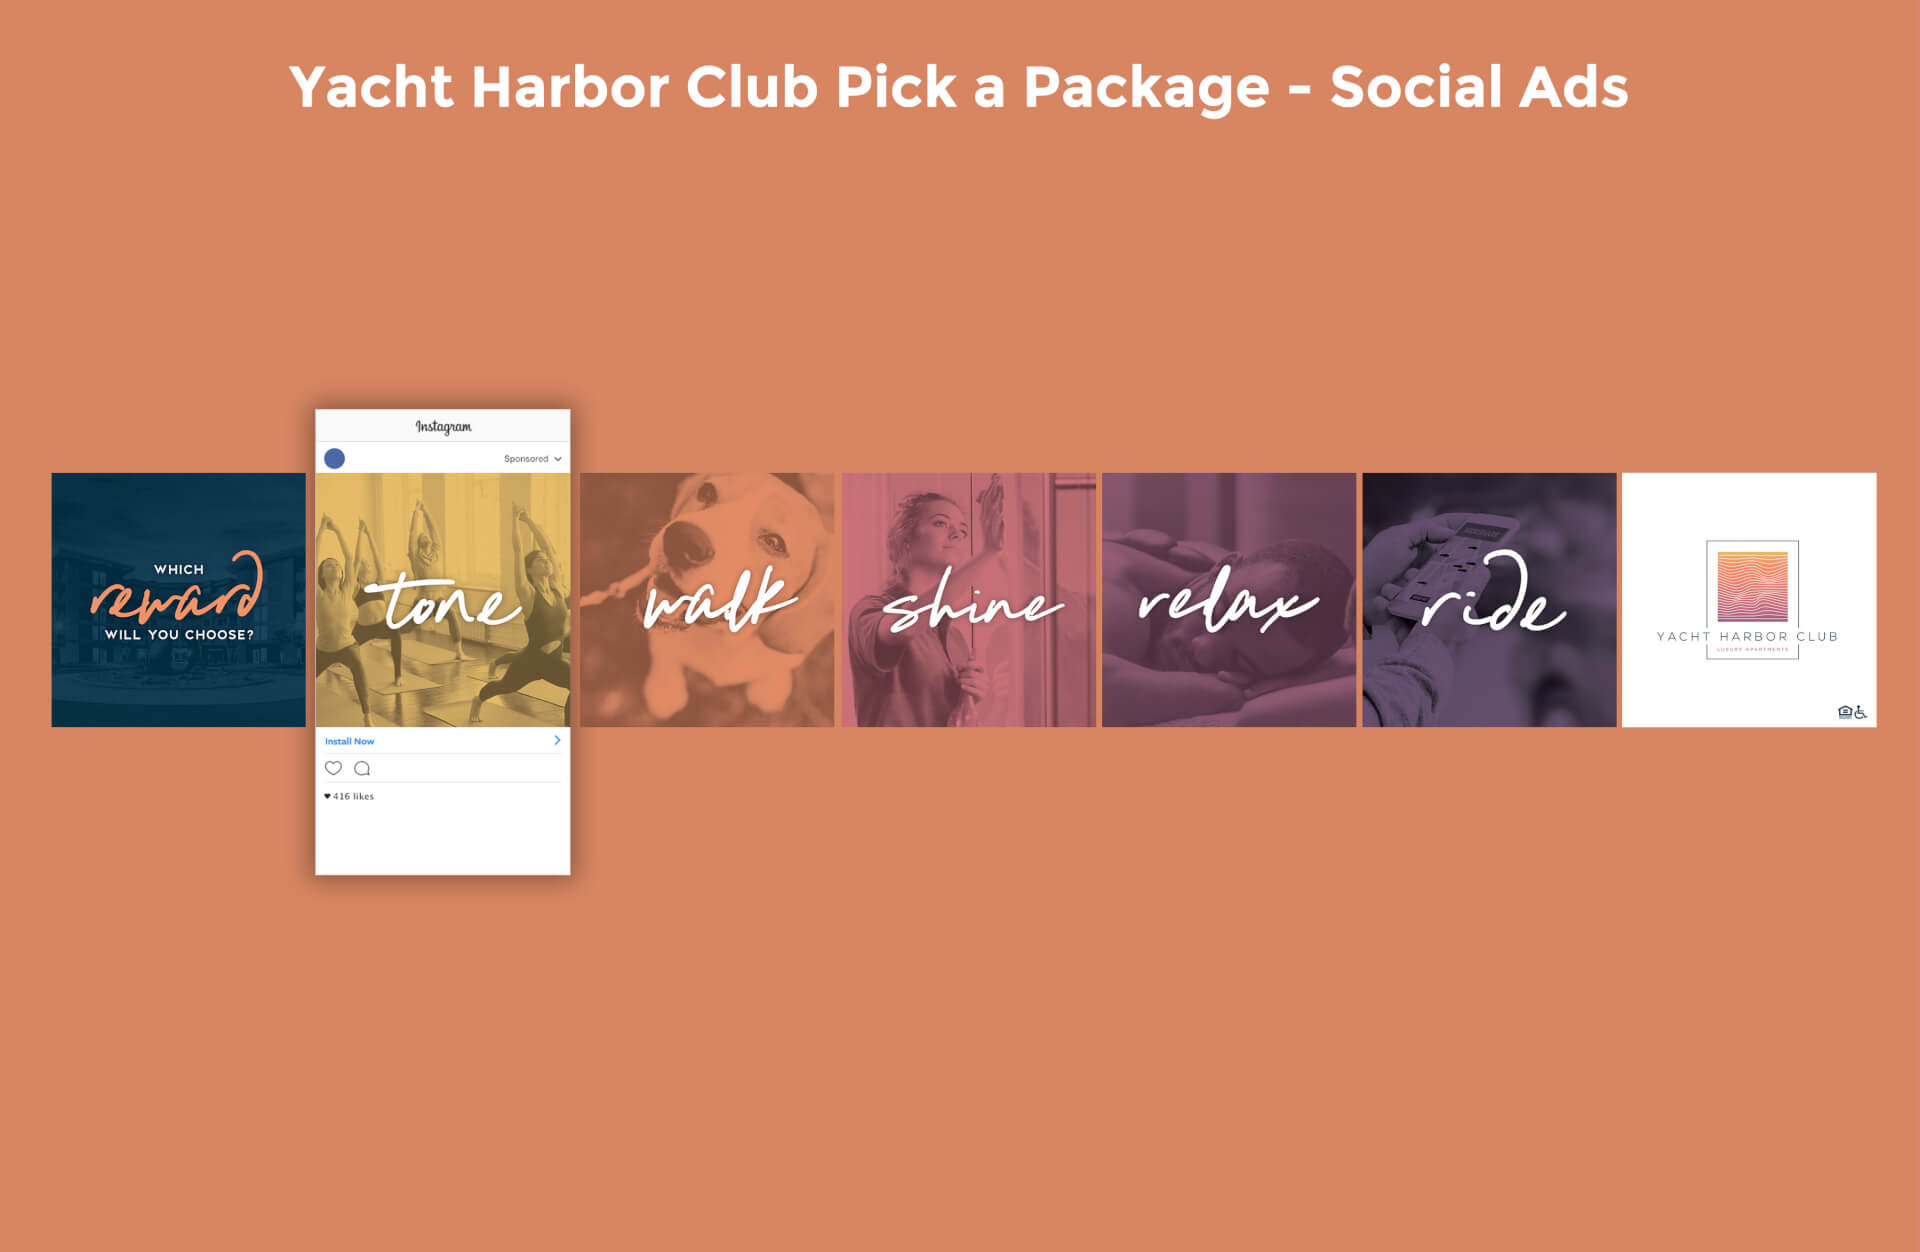 Yacht Harbor Club Pick-A-Package Social Ads Image